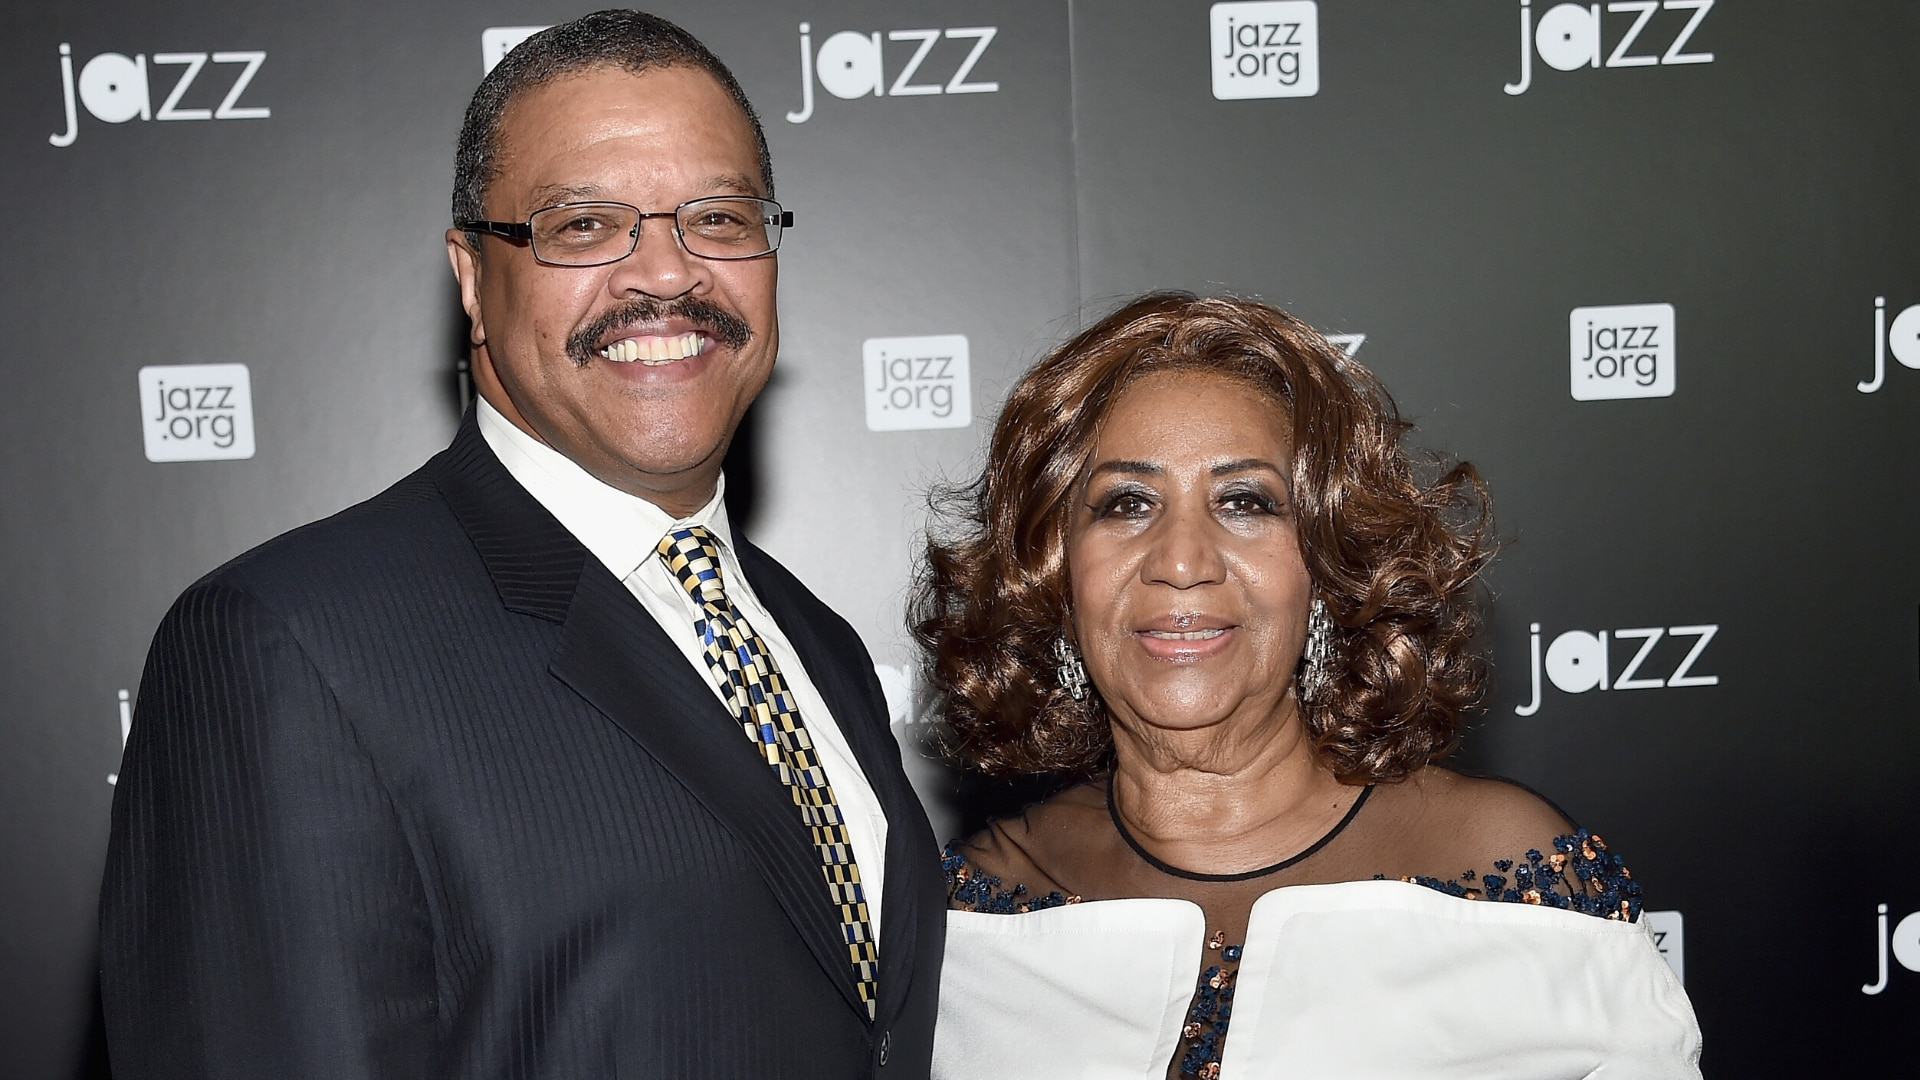 Willie Wilkerson and Aretha Franklin theGrio.com